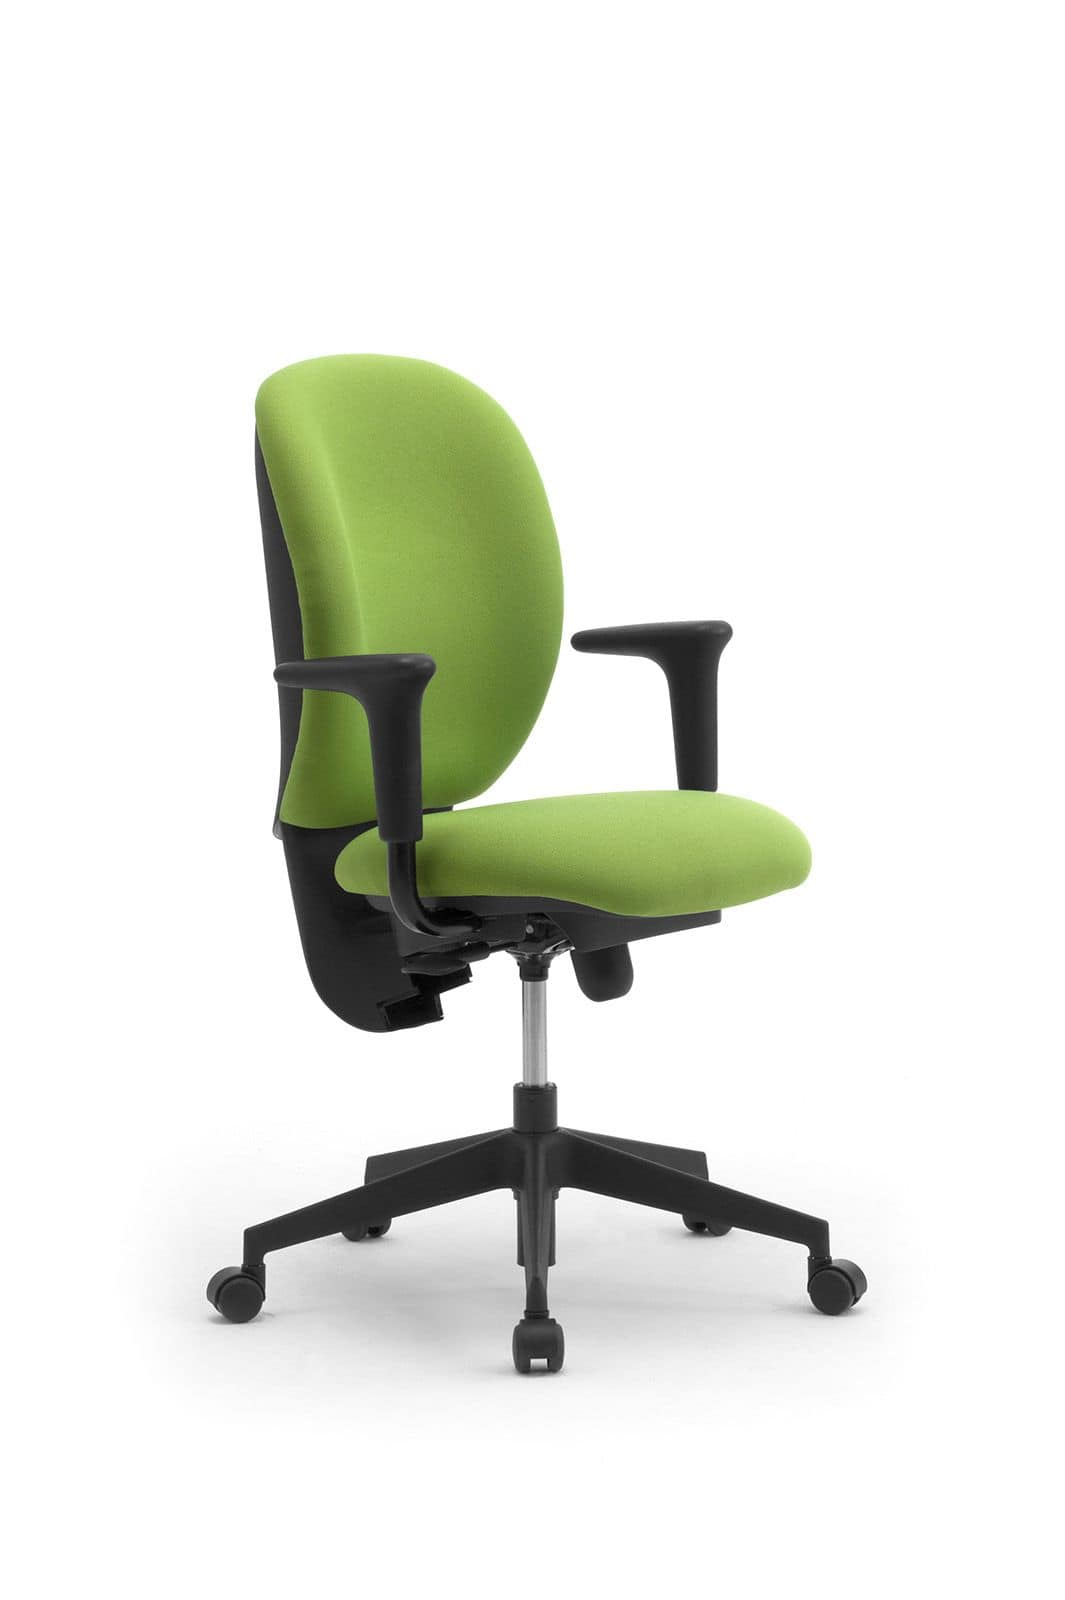 Gummy task 09605, Operational office chair, ergonomic and adjustable